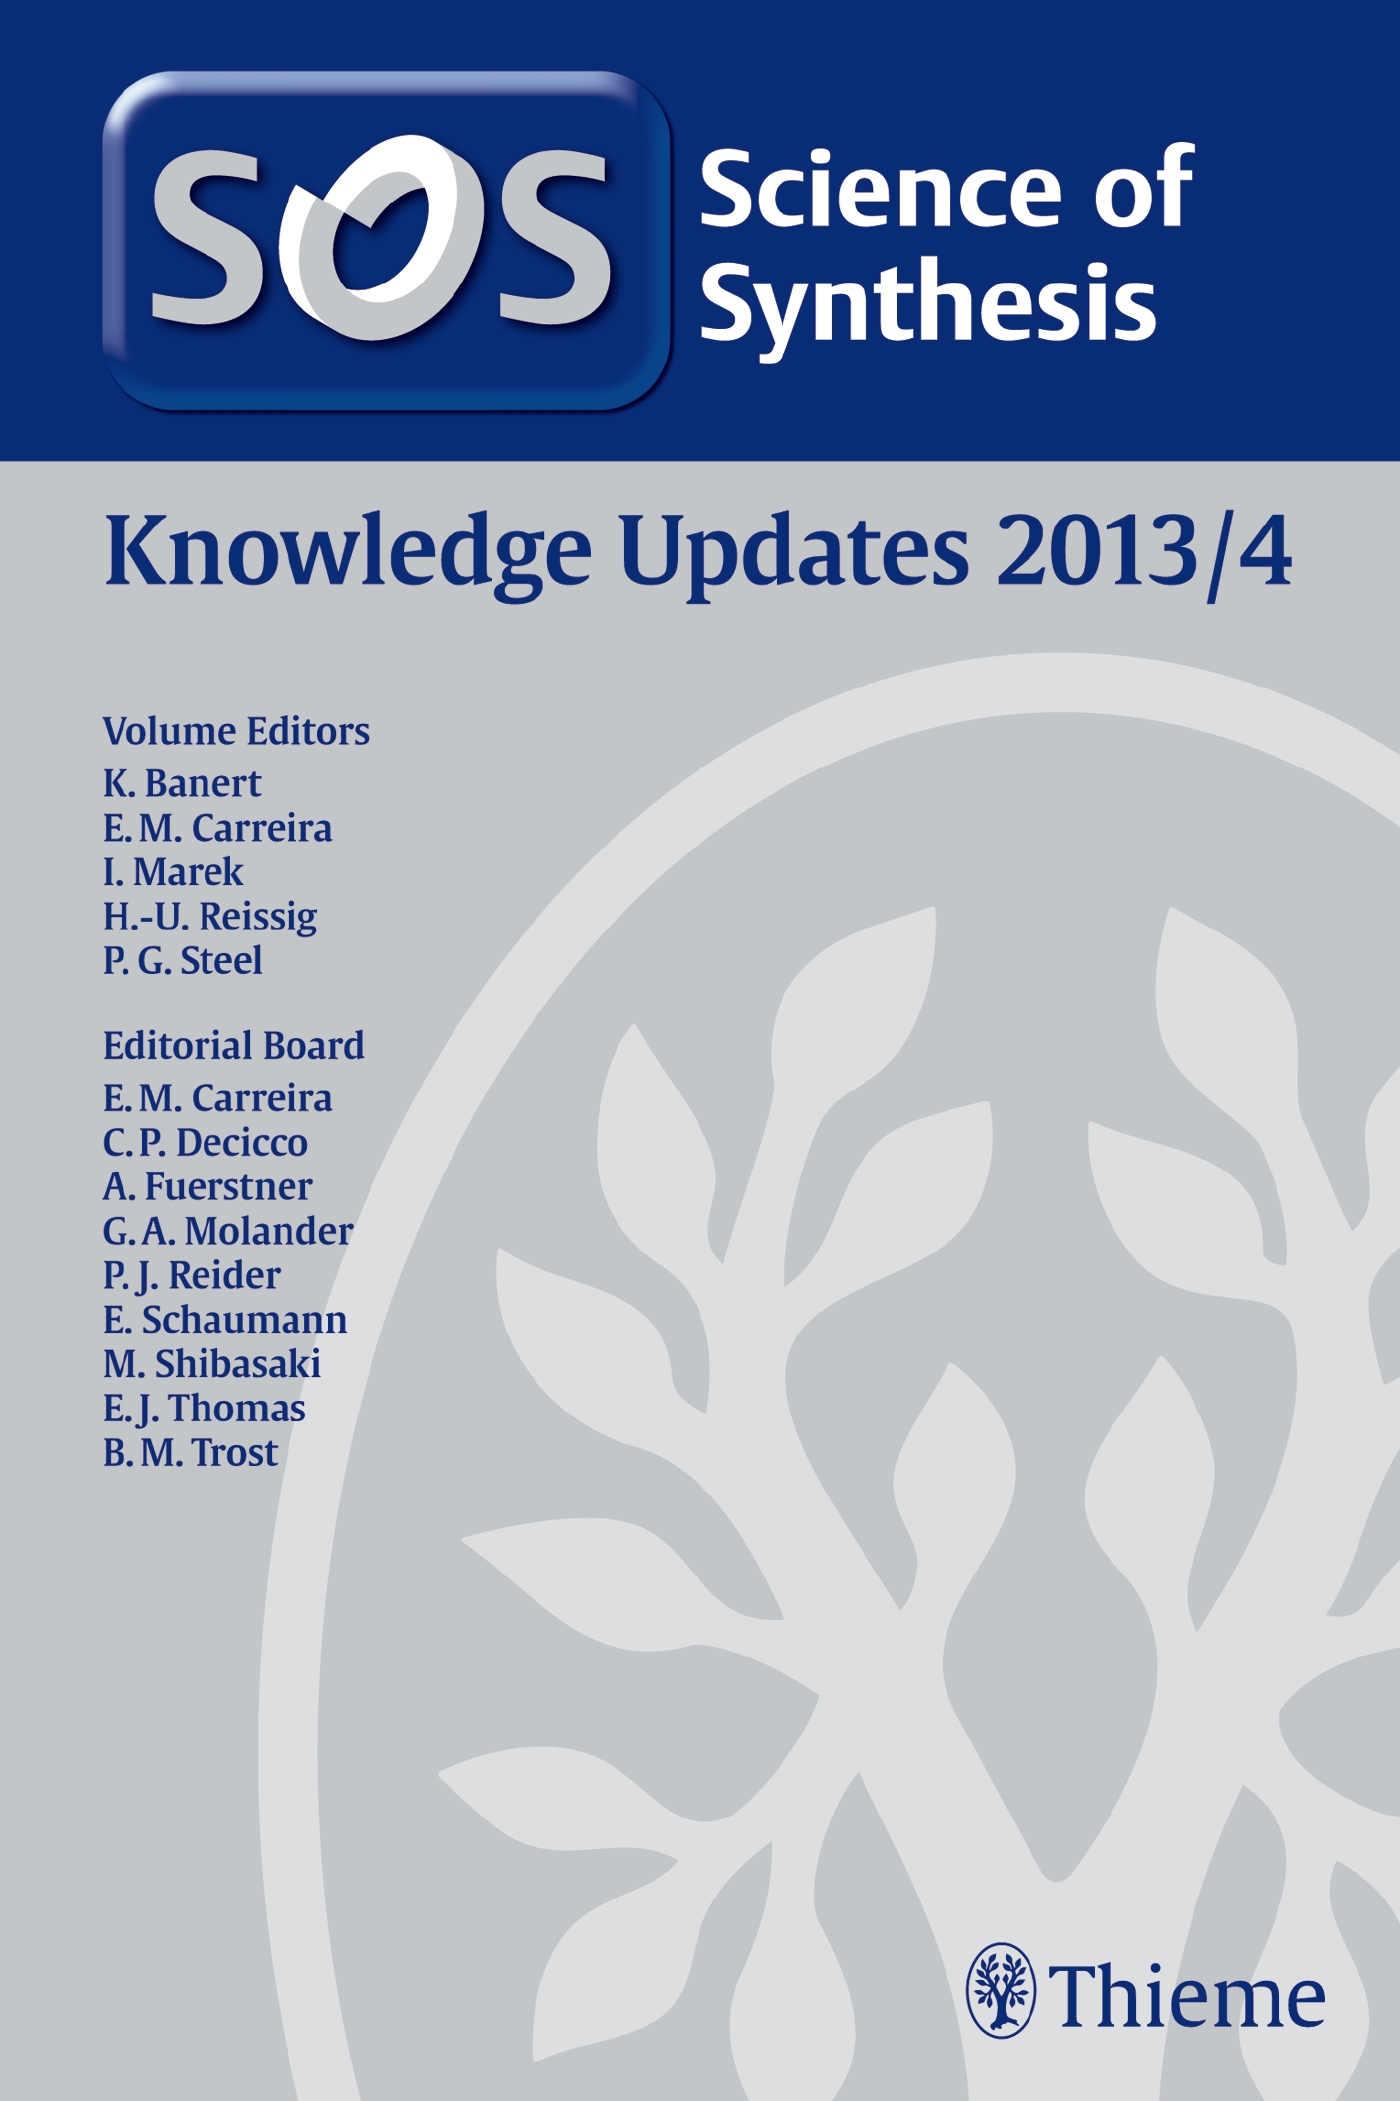 Science of Synthesis Knowledge Updates 2013 Vol. 4